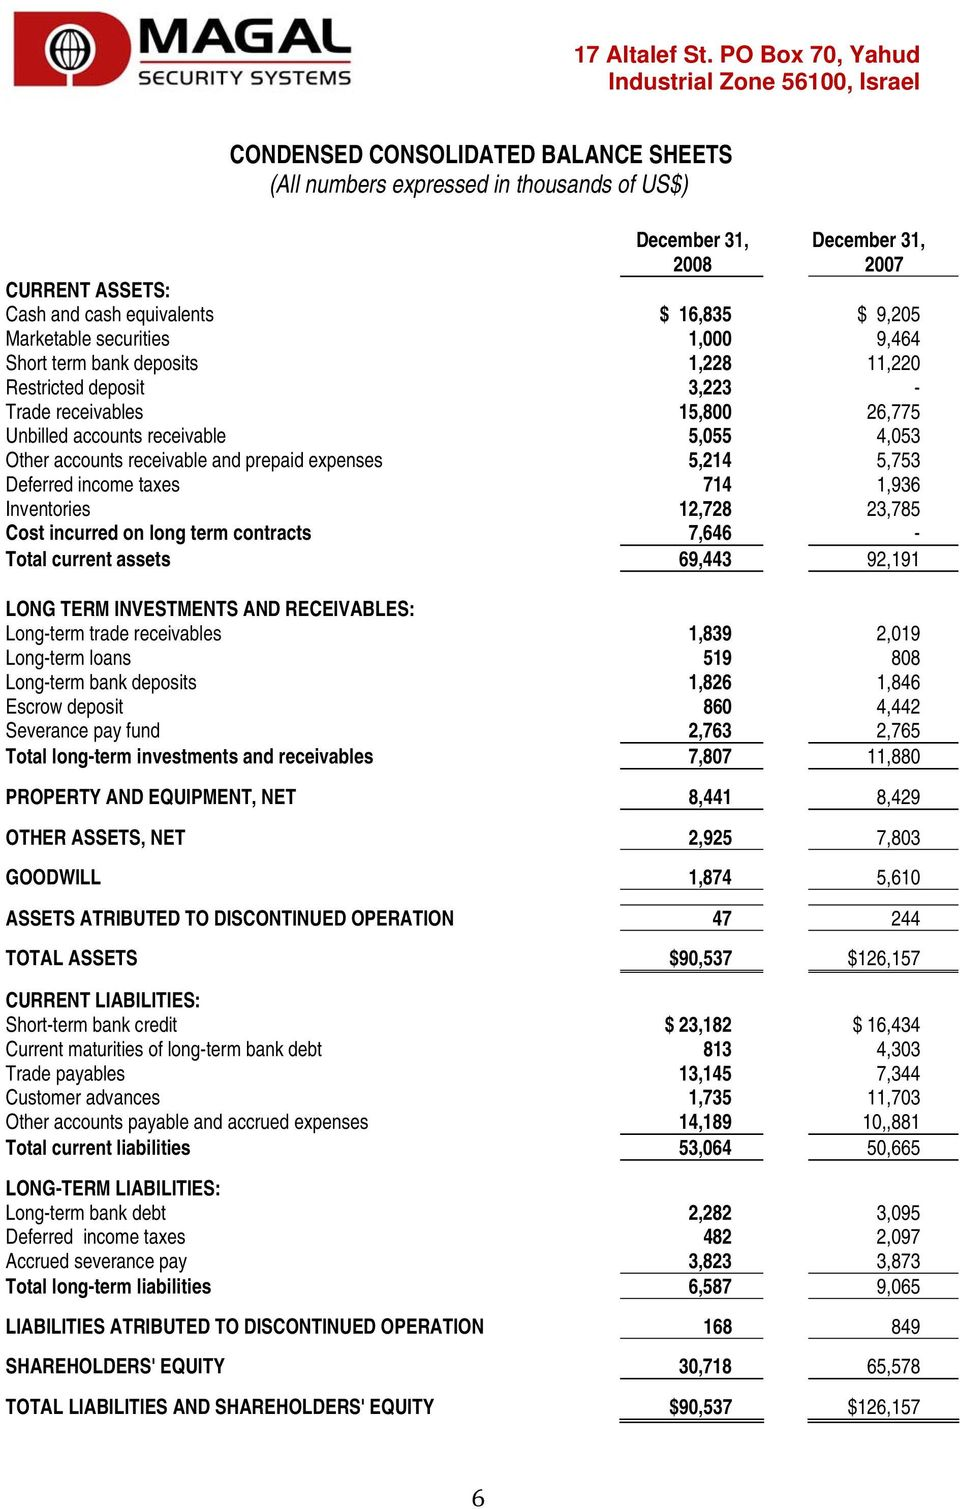 5,214 5,753 Deferred income taxes 714 1,936 Inventories 12,728 23,785 Cost incurred on long term contracts 7,646 - Total current assets 69,443 92,191 LONG TERM INVESTMENTS AND RECEIVABLES: Long-term